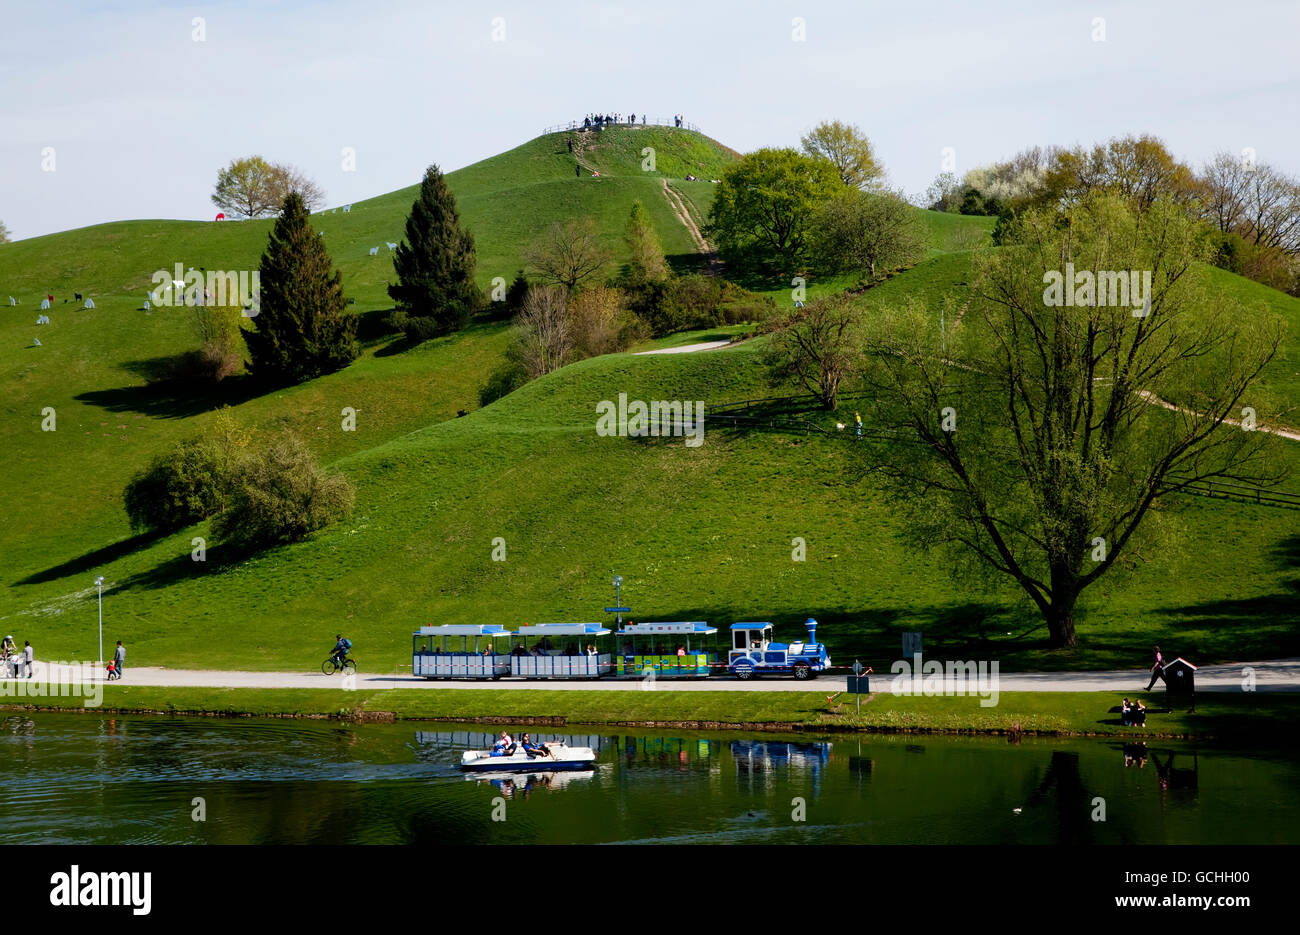 A path leading around and up lush, grassy hills by a lake and Olympiastadion; Munich, Bavaria, Germany - Stock Image